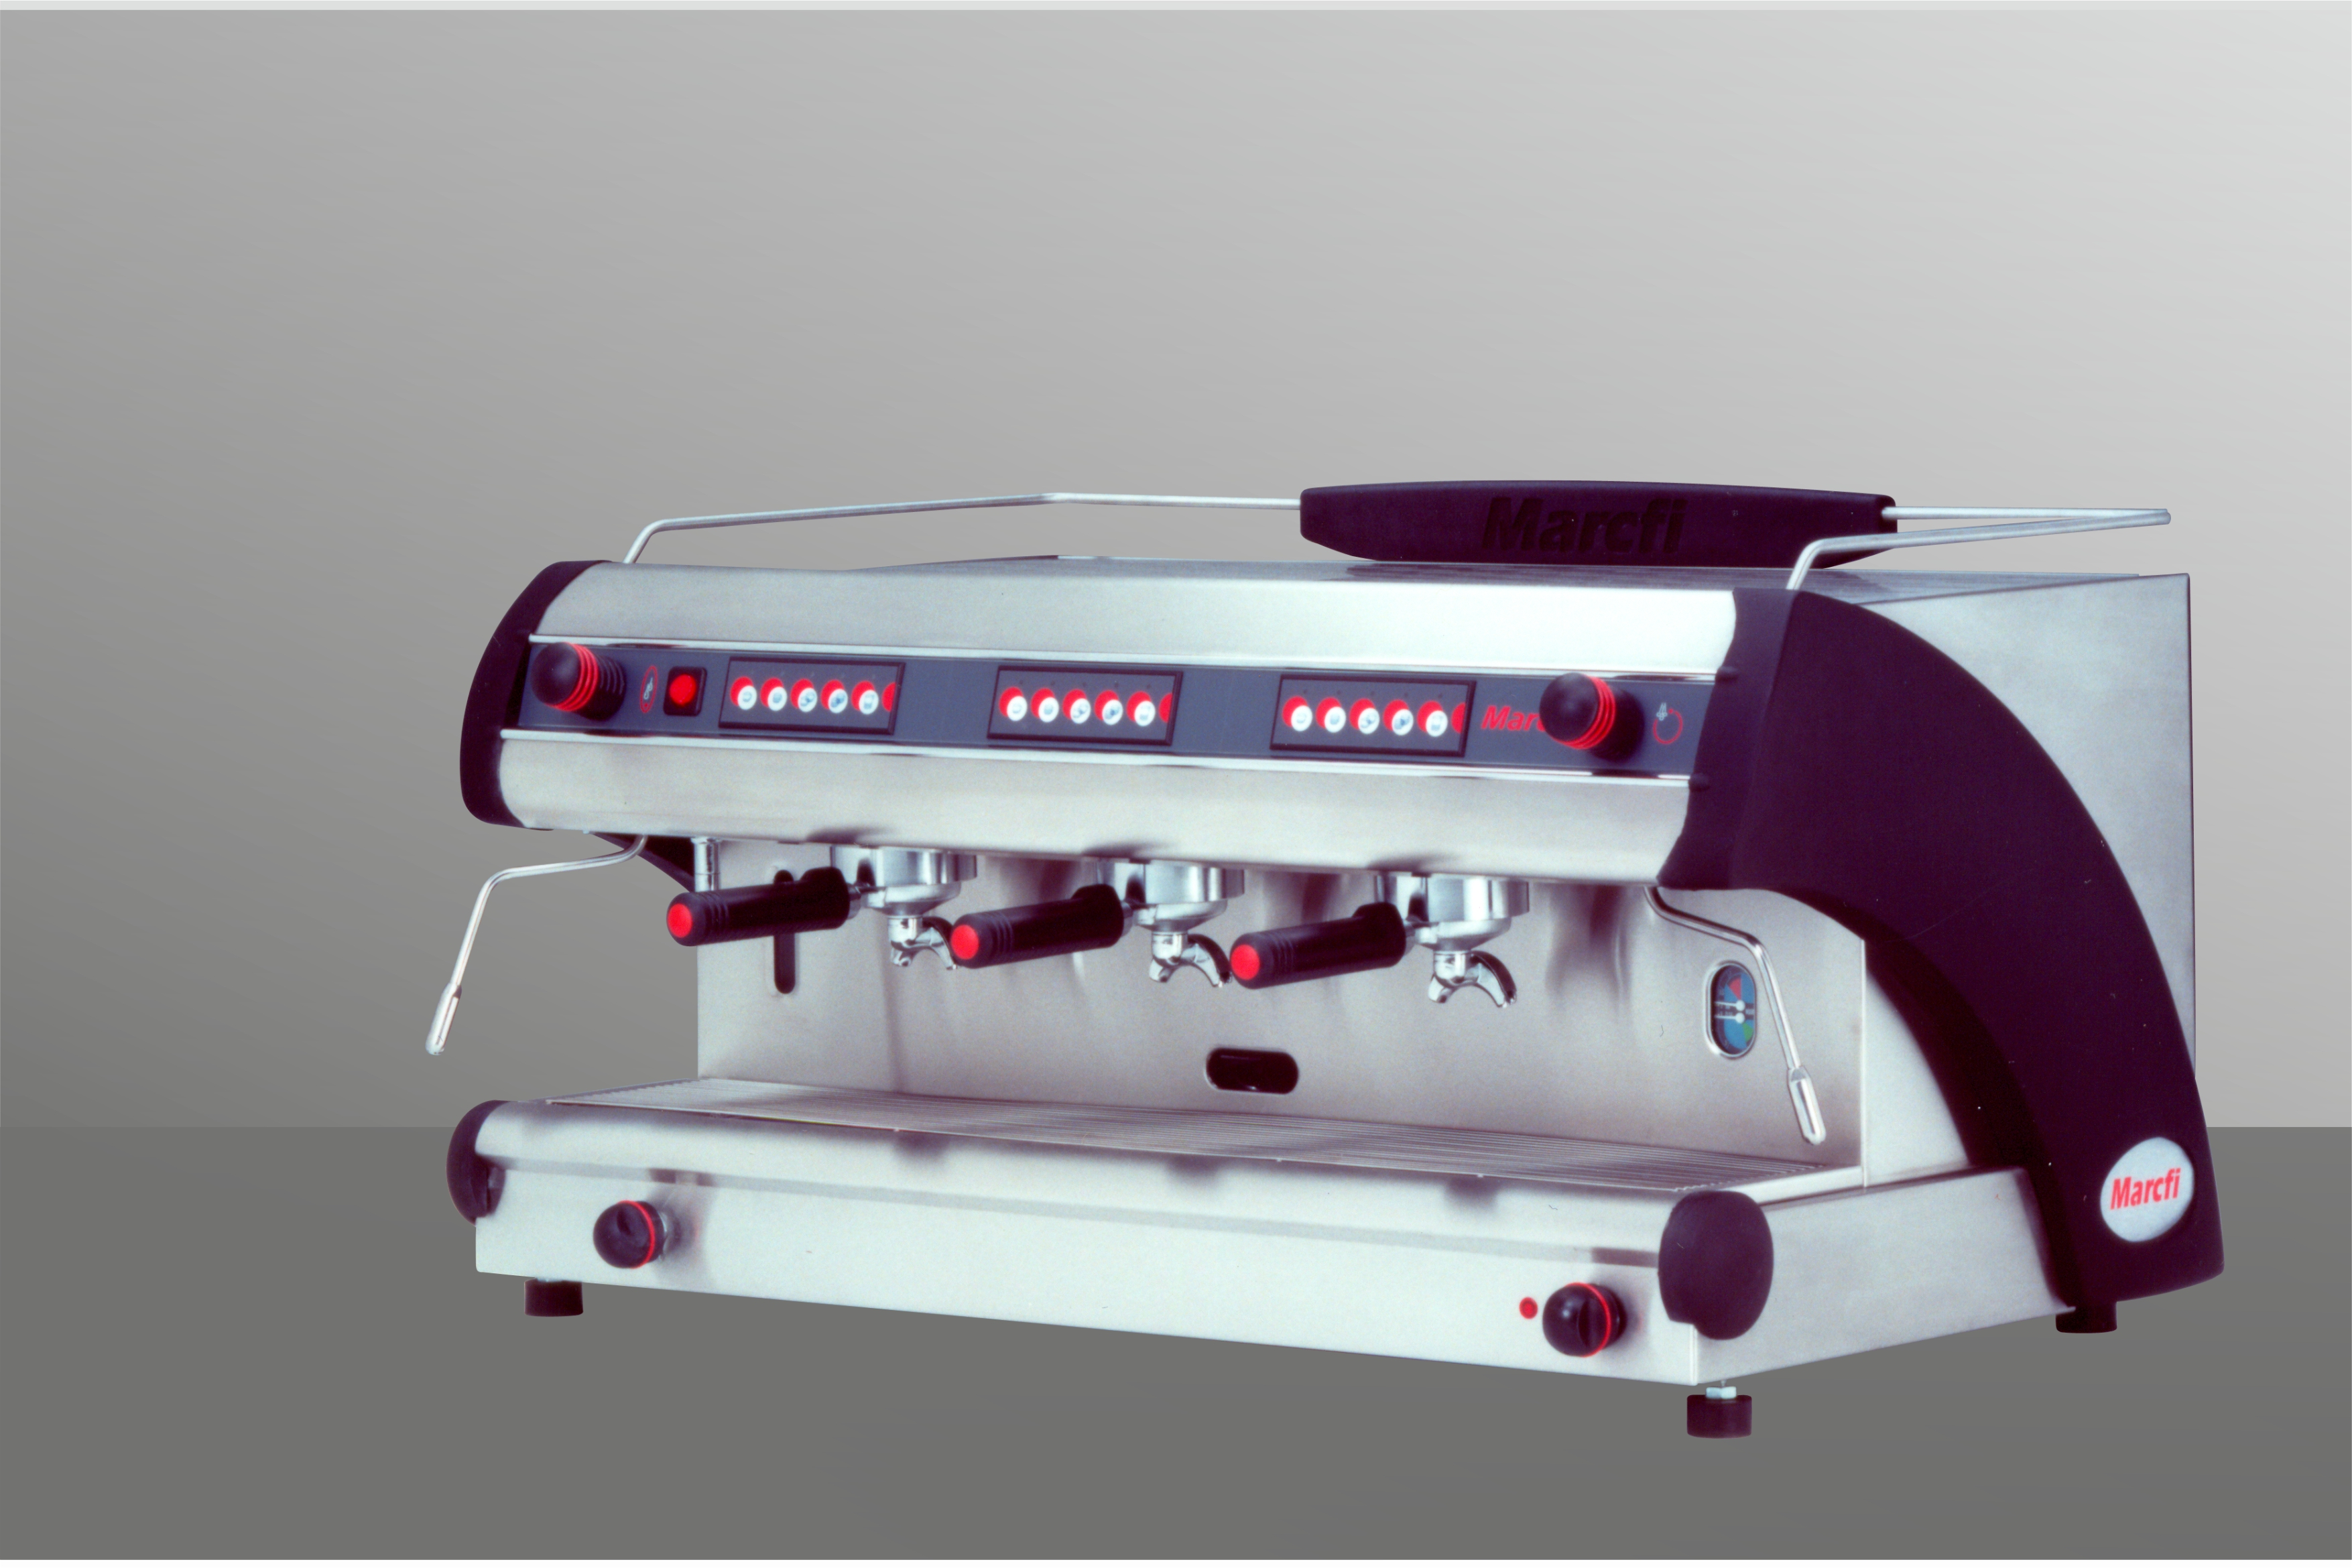 PROFESIONAL COOFFE MACHINE